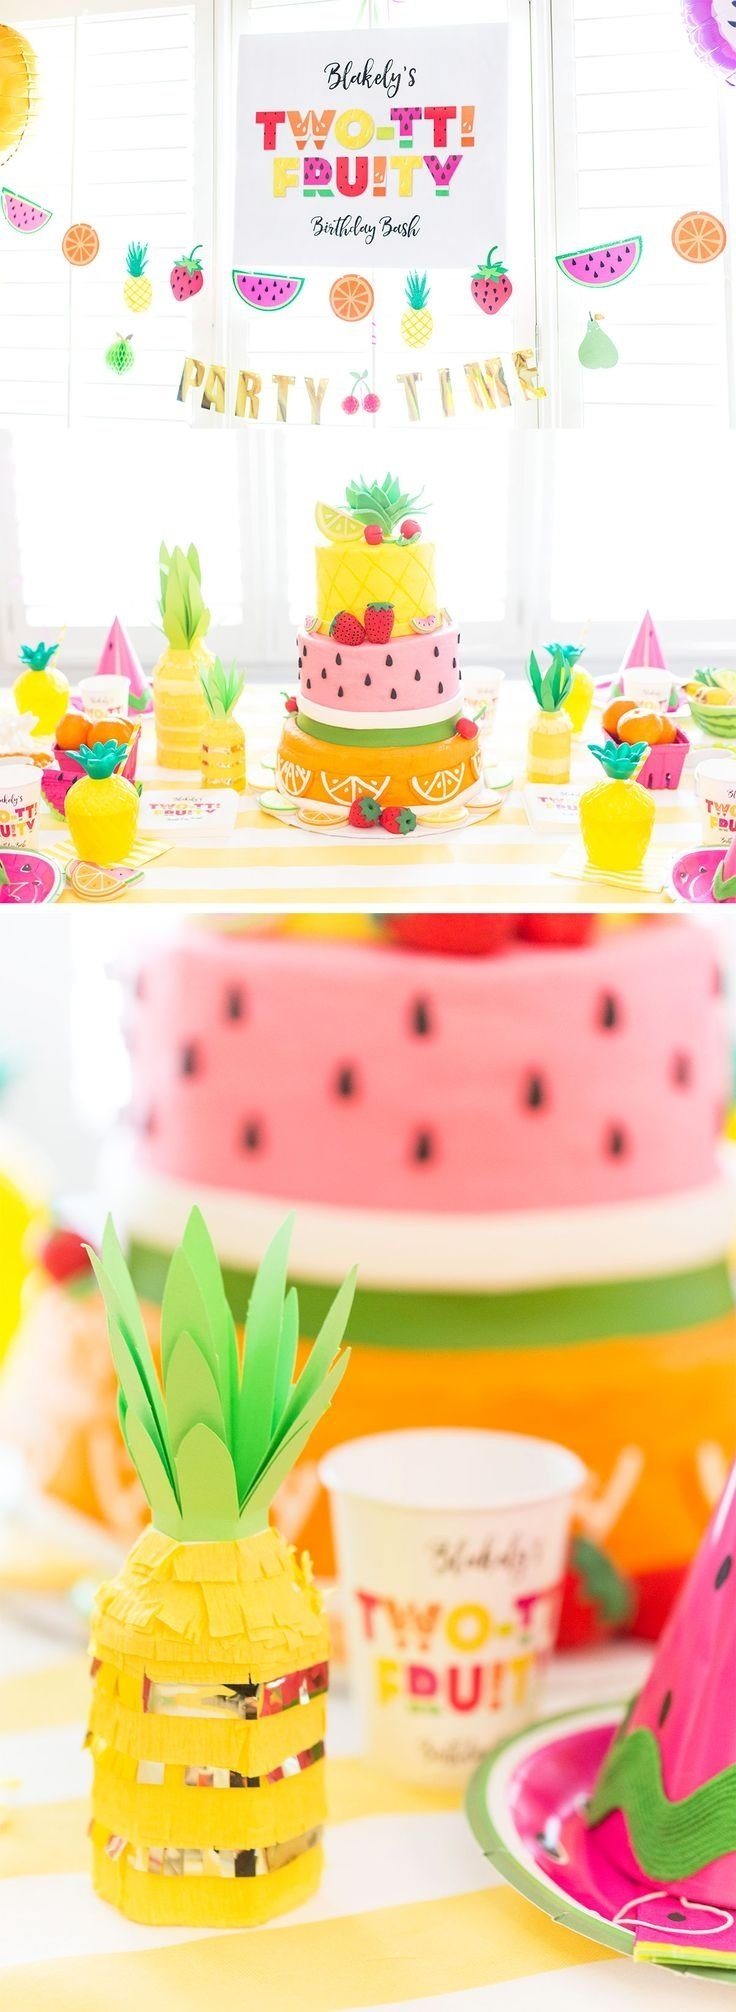 10 Wonderful Ideas For 2Nd Birthday Party 124 best twotti fruity kenlys 2nd birthday party images on